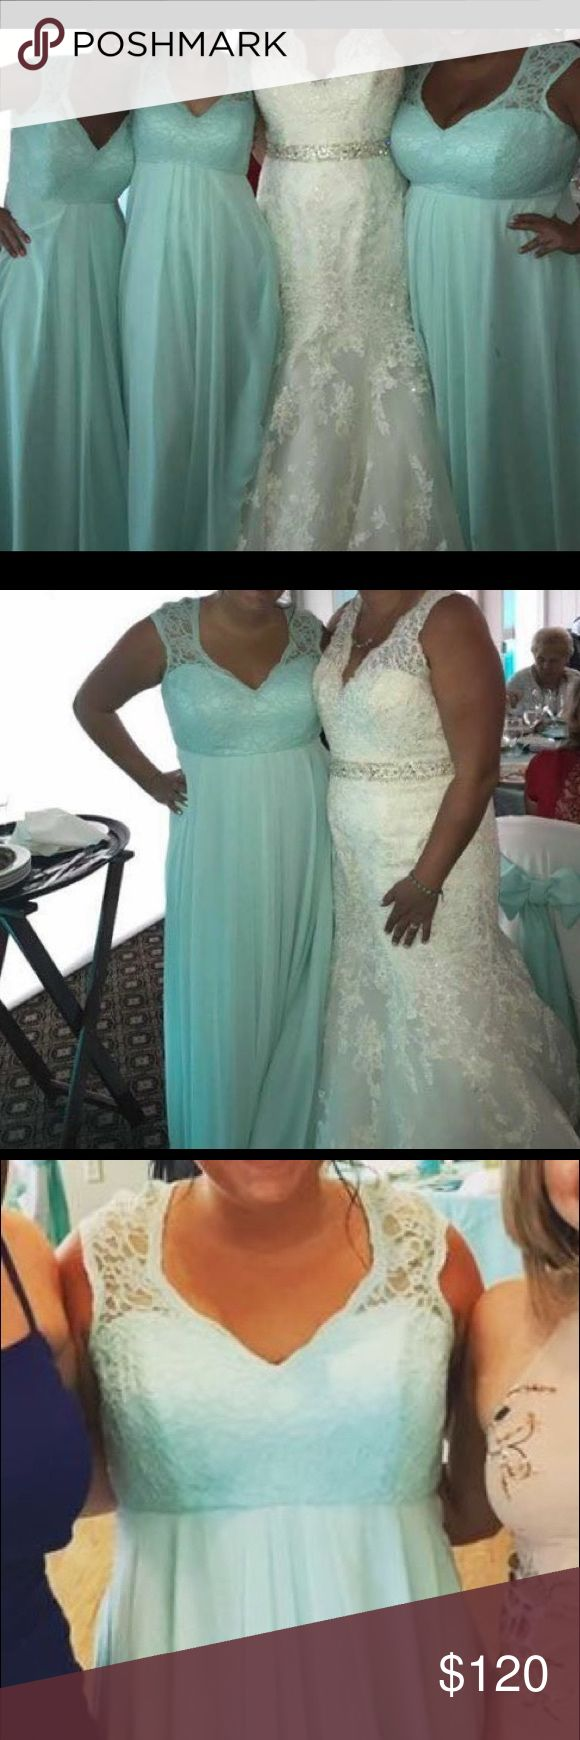 Miri Lee bridesmaid dress Mori Lee bridesmaid dress, Tiffany blue, size 18 (however my street size is a 10.)  will take best offer Mori Lee Dresses Prom